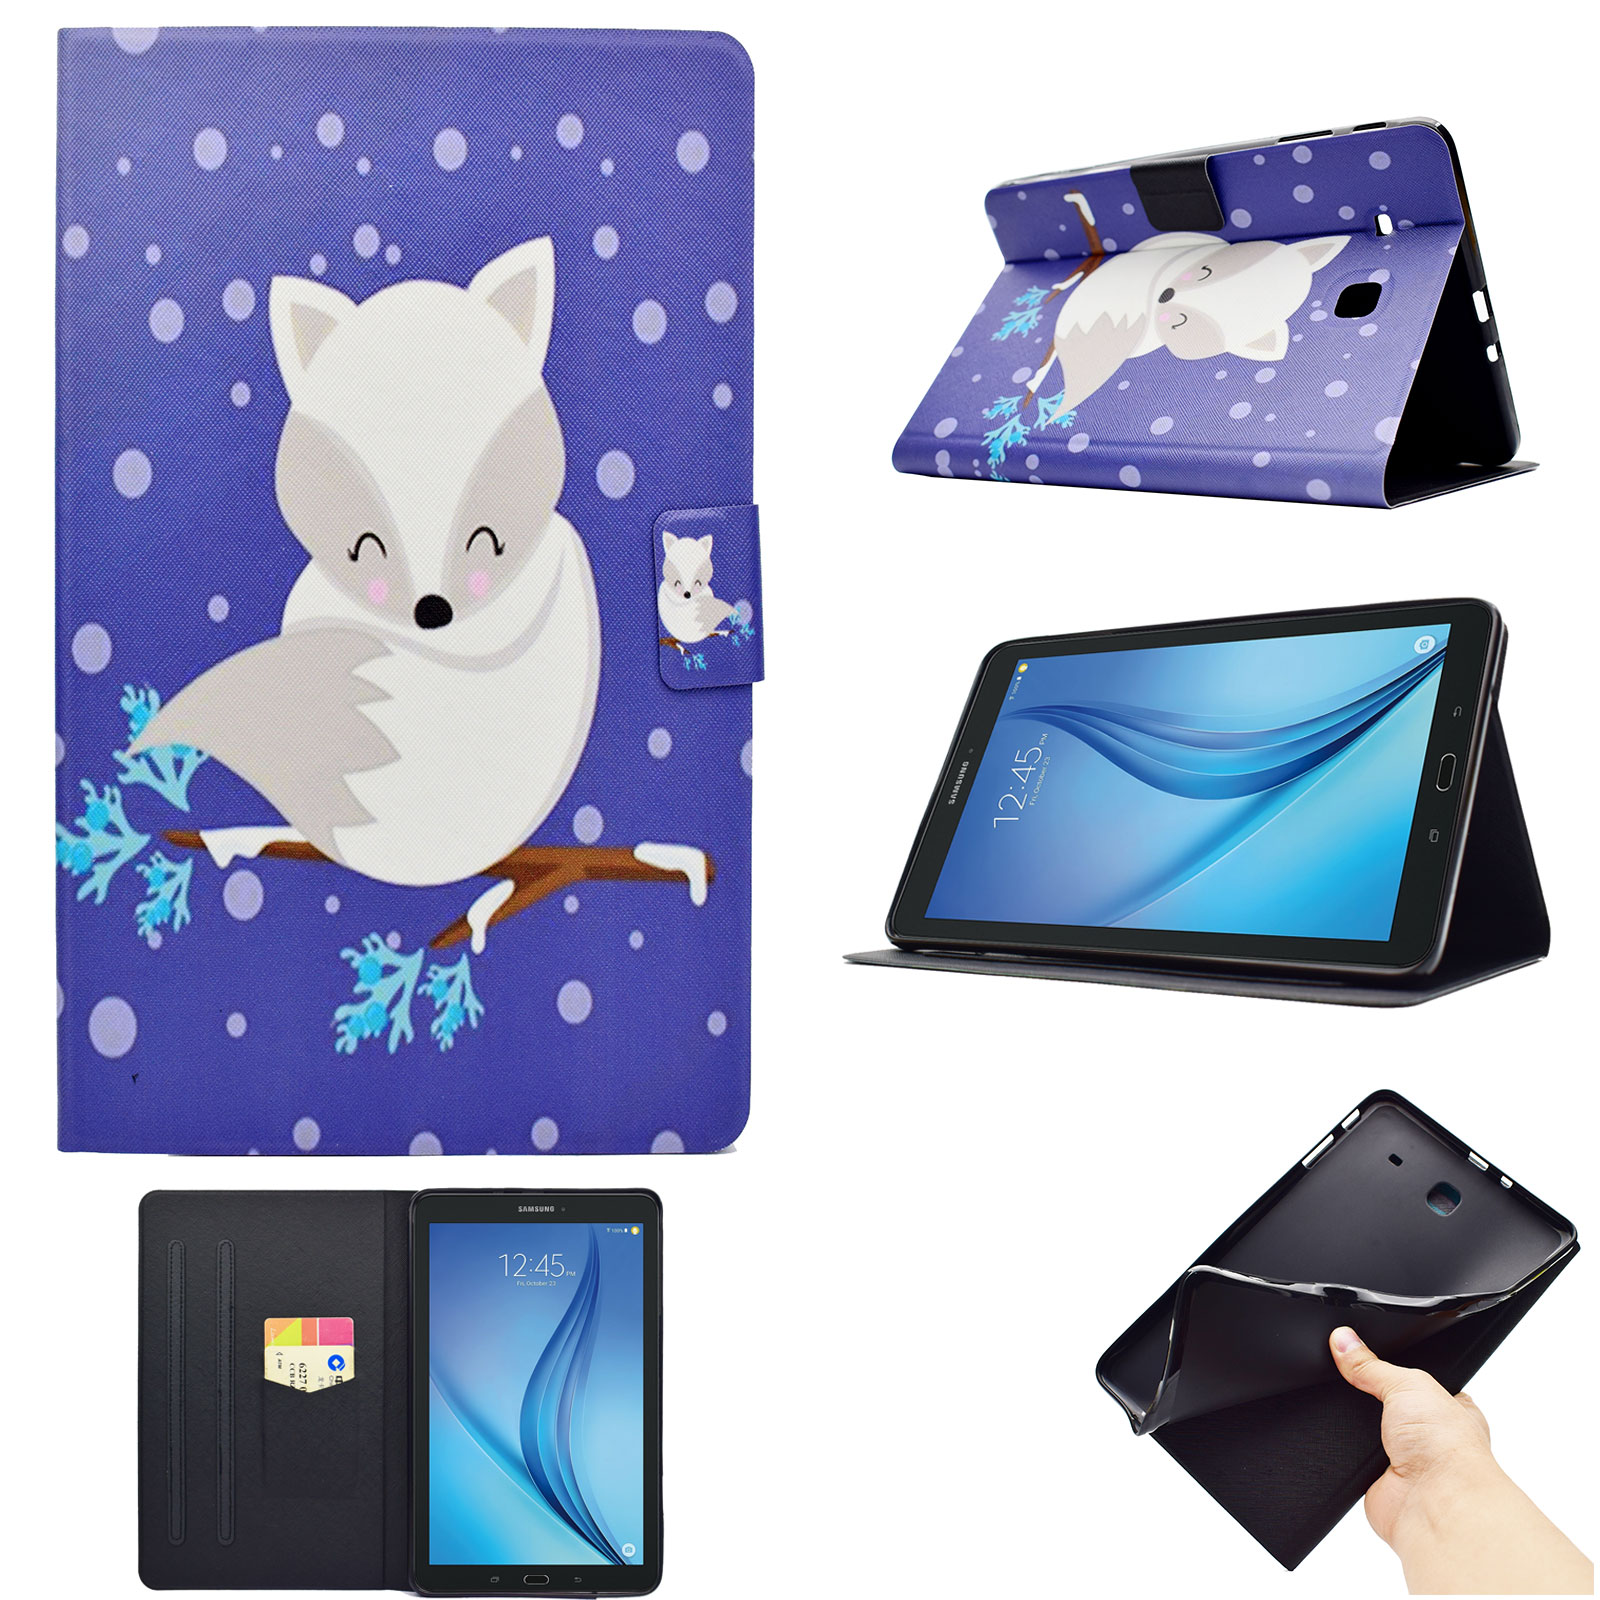 Galaxy Tab E 9.6 Folio Case, Goodest PU Leather Flip Folio Kids Friendly Case with Card Slot & Mutiple Angle Viewing Stand for Galaxy Tab E 9.6 T560 2015 Tablet (Not Fit SM-T560NU), White Fox